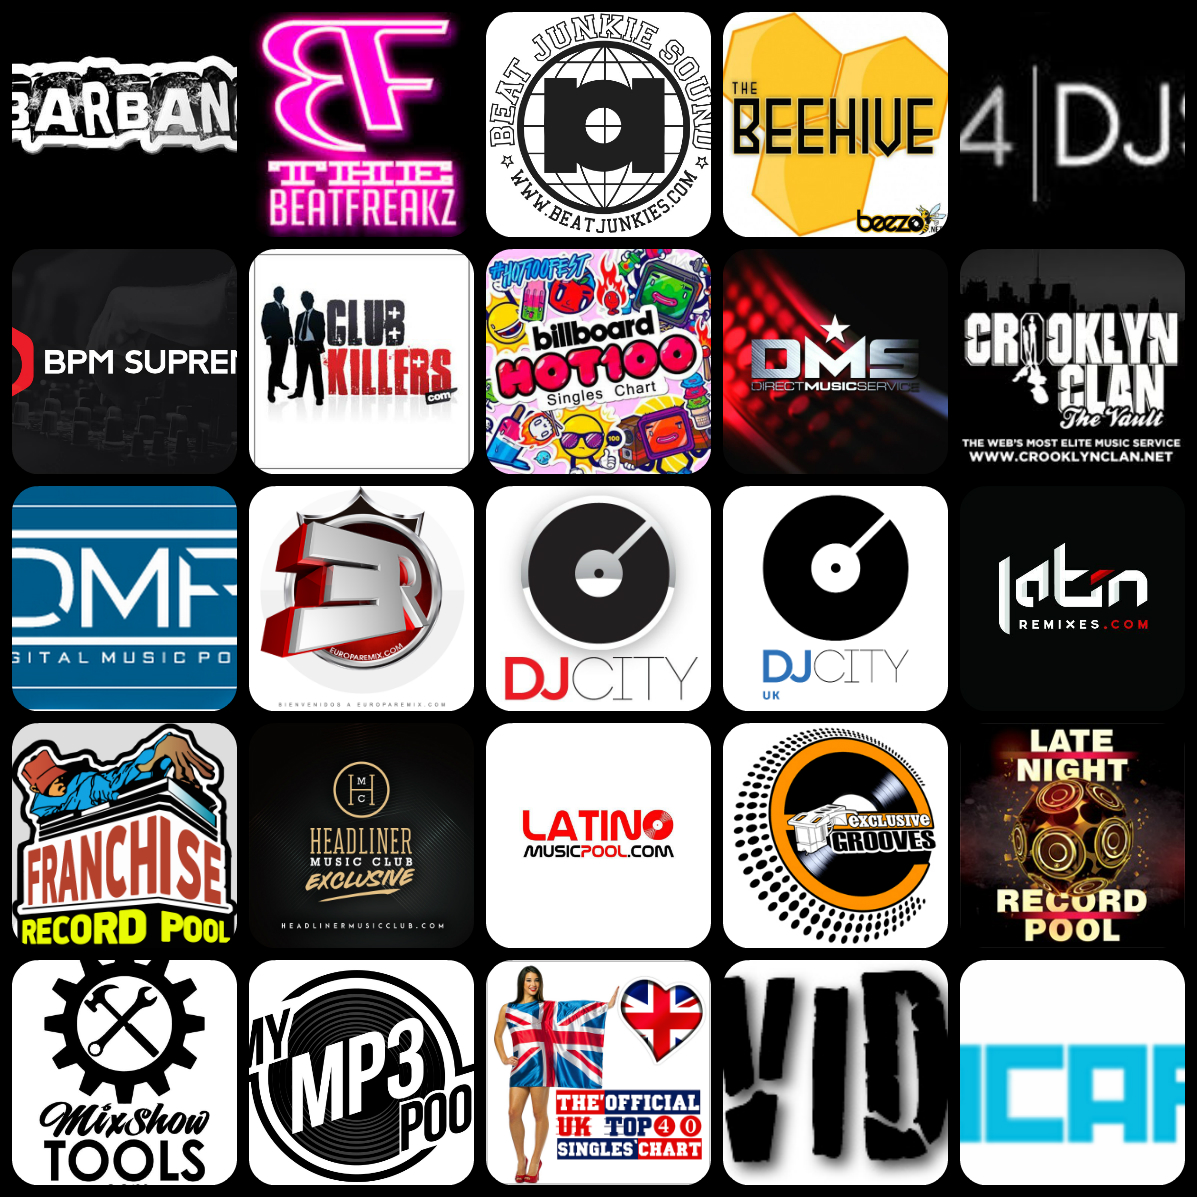 Music Pool For DJs new mp3, mp4 video hd, acapellas, DJ Tools